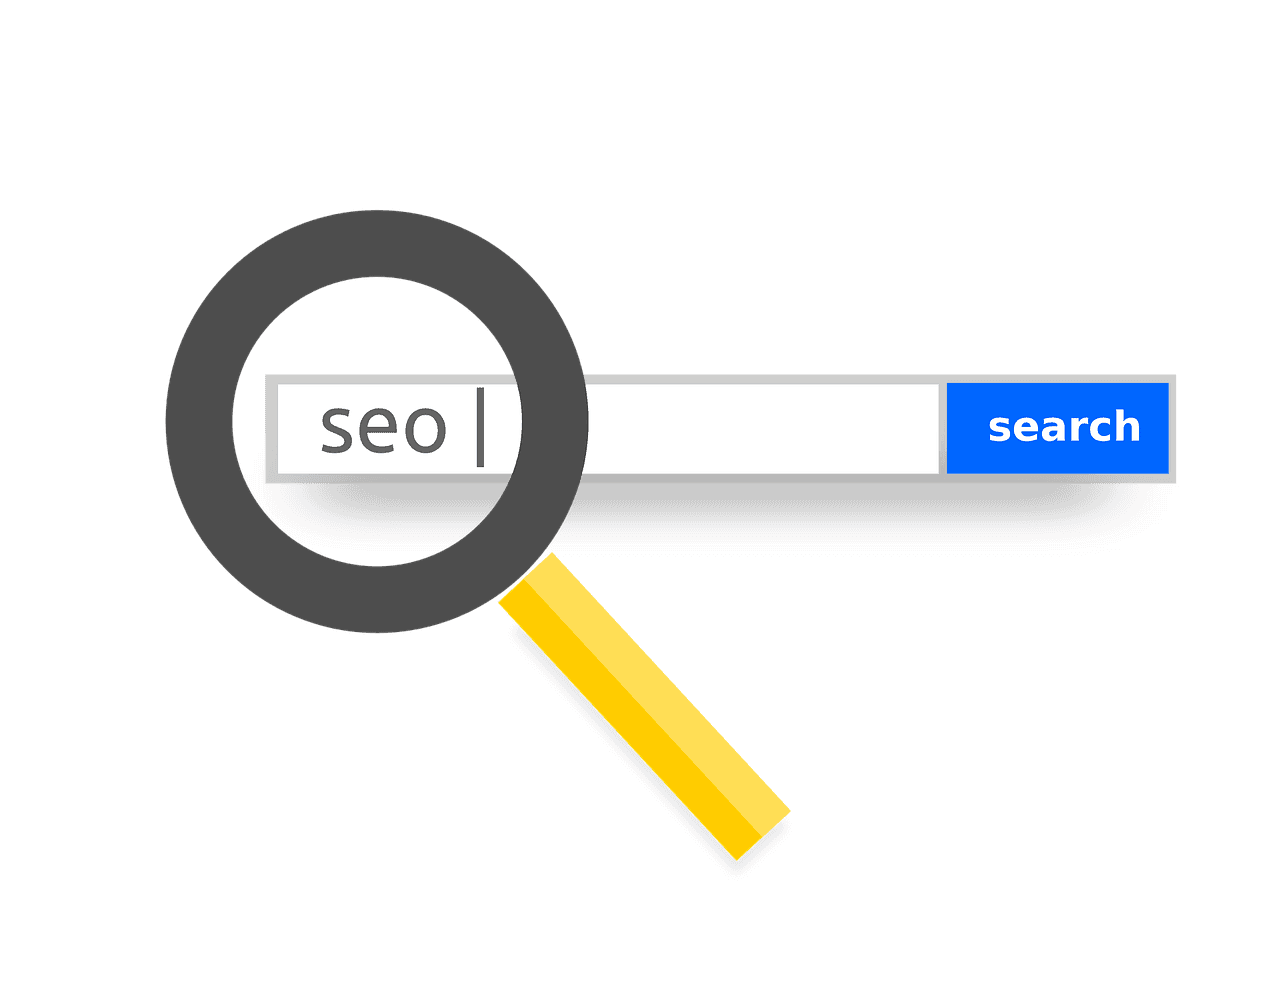 a search engine open with seo typed into the search bar